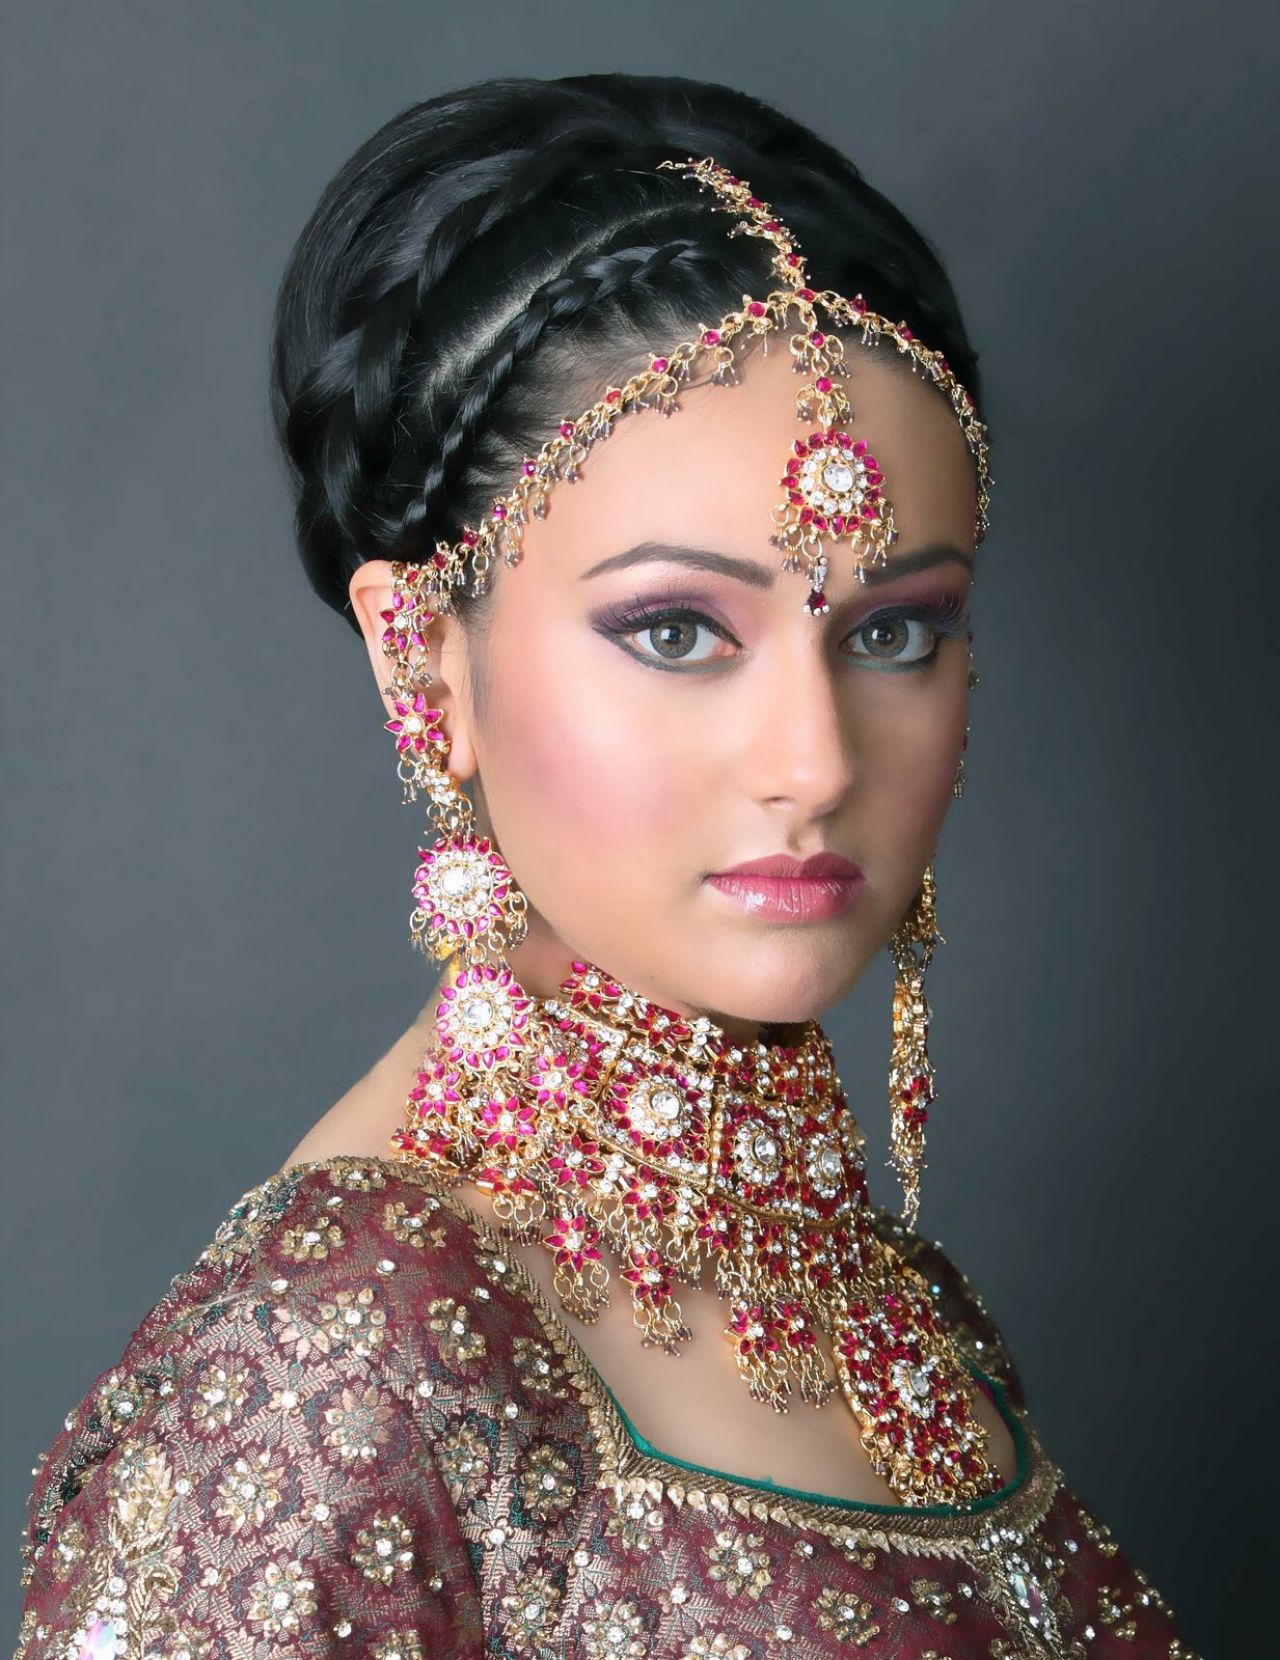 20-indian-wedding-hairstyles-ideas-wohh-of-super-awesome-pictures.jpg